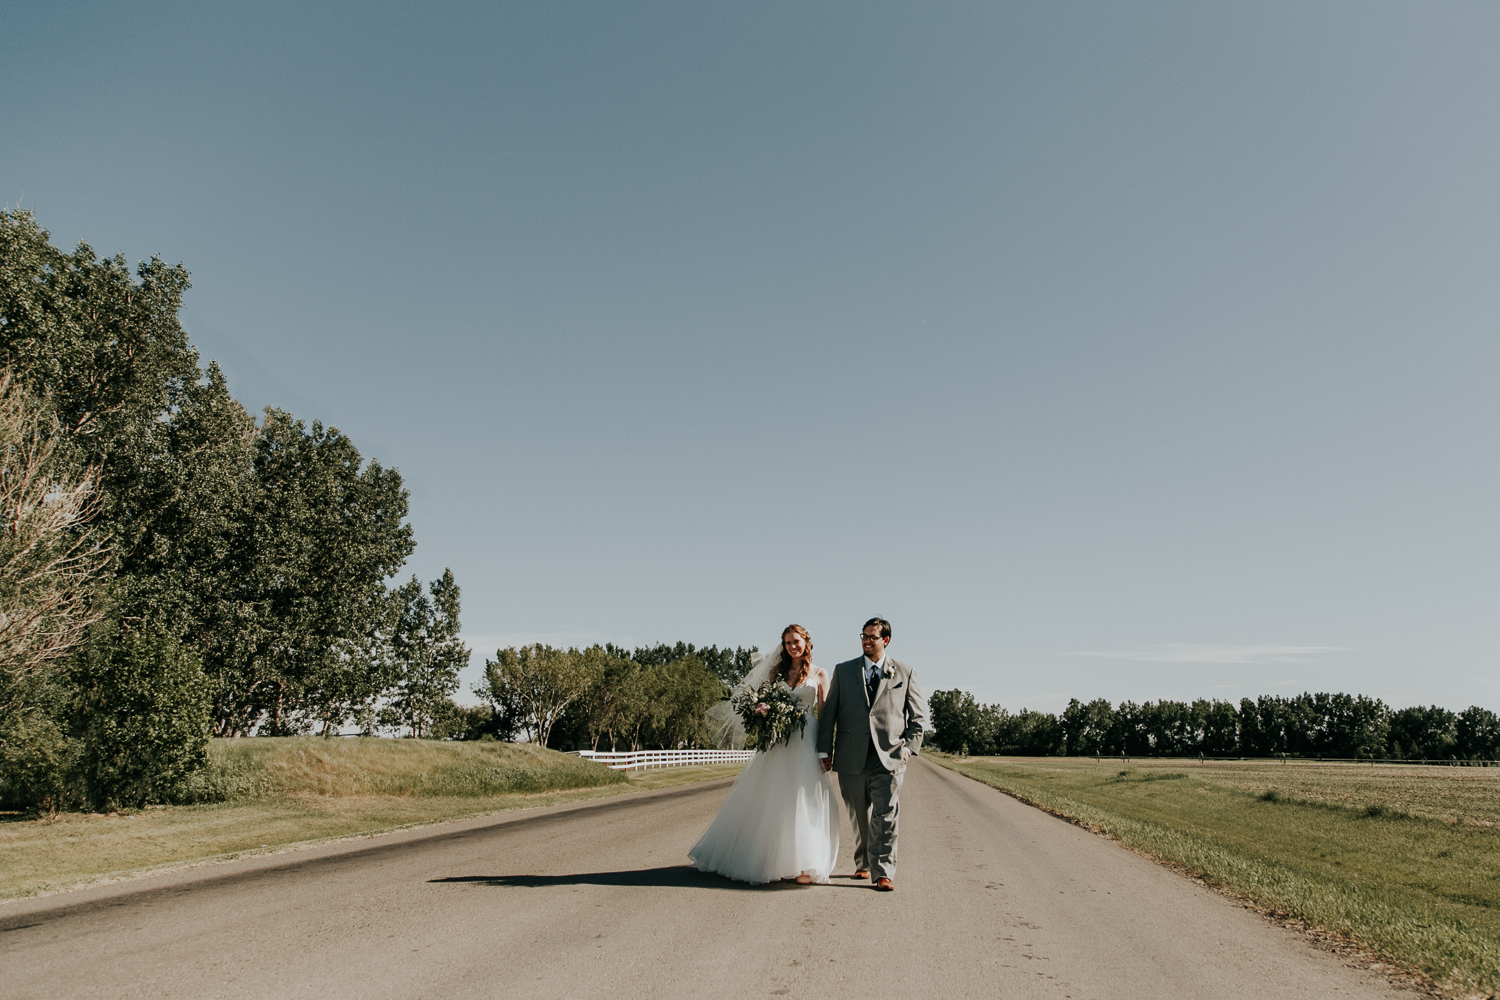 lethbridge-wedding-photographer-love-and-be-loved-photography-dan-tynnea-picture-image-photo-167.jpg